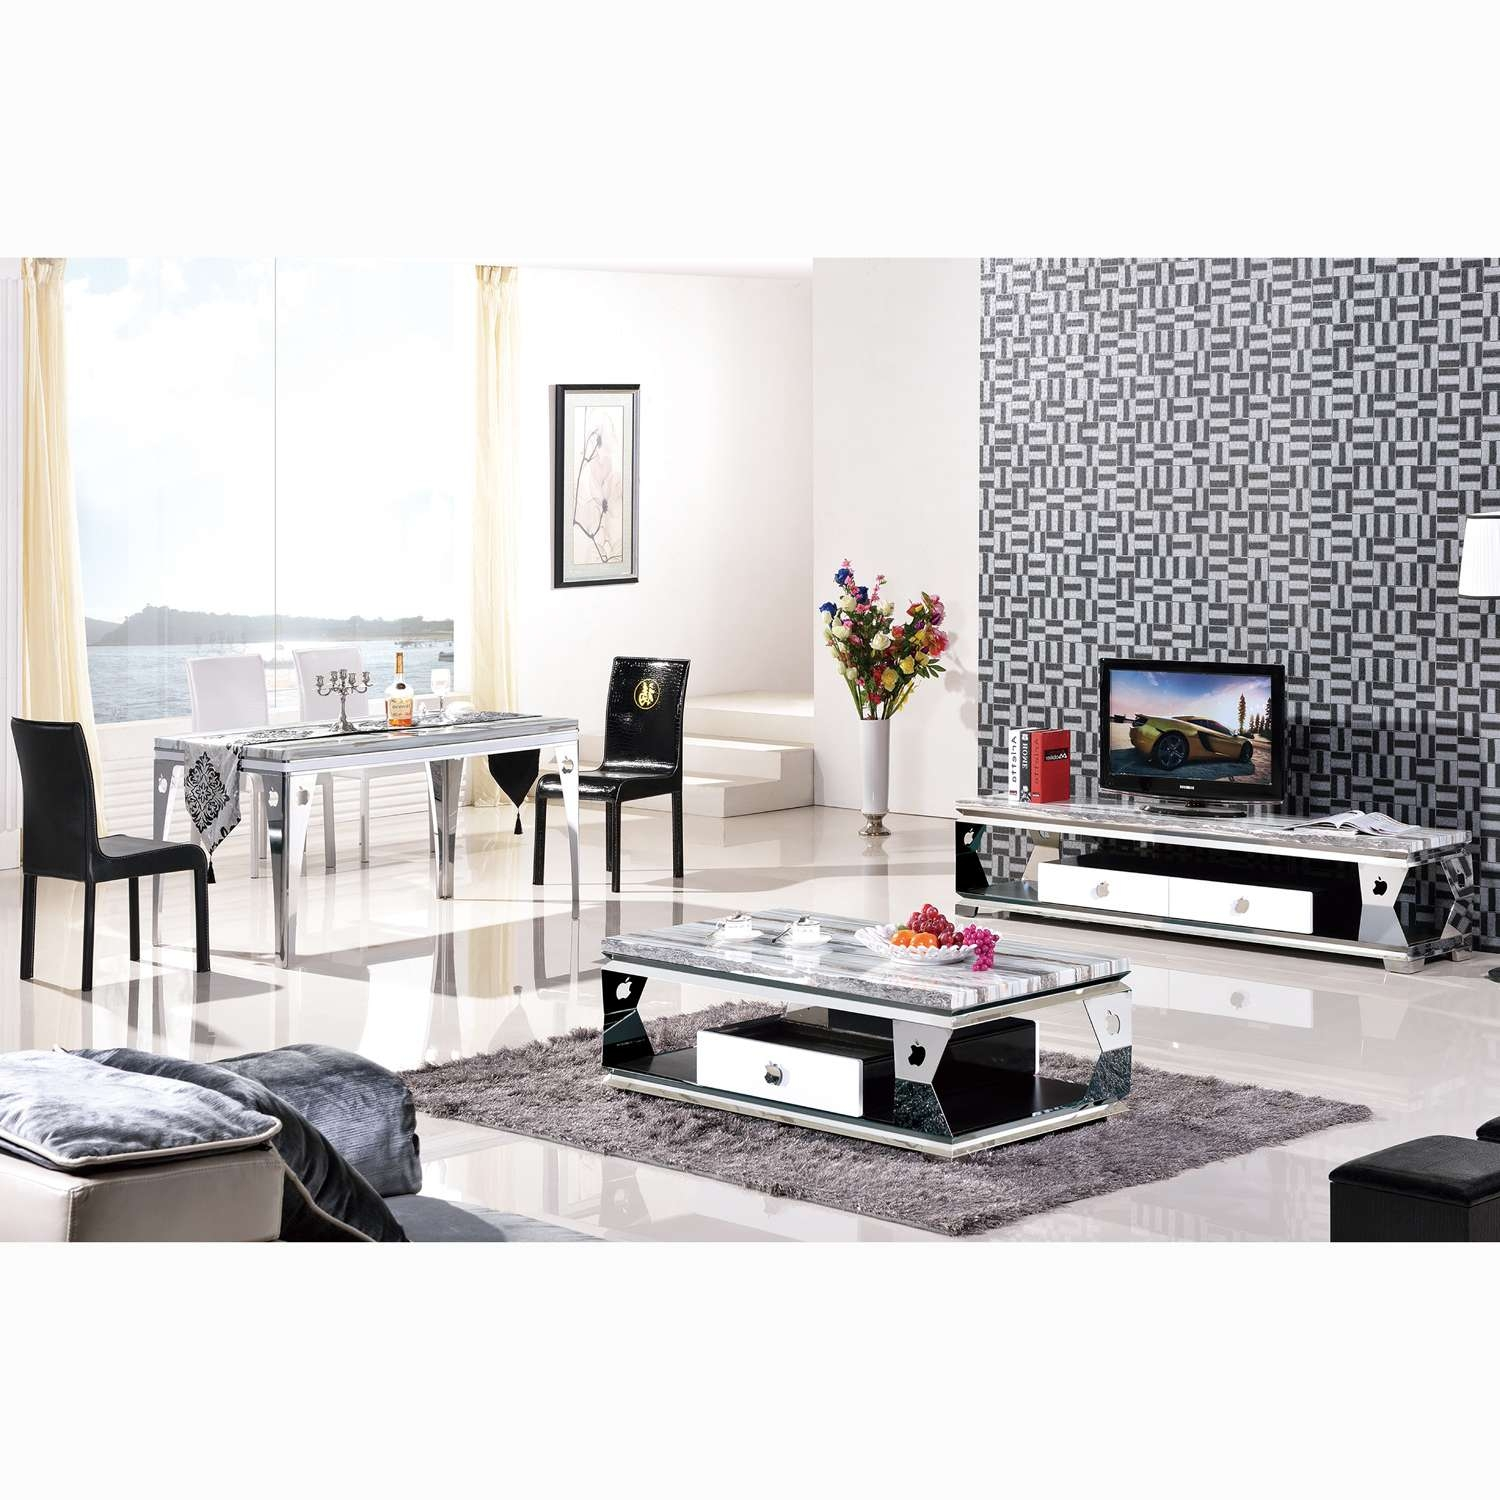 Coffee Table : Best Of Tv Unit And Coffee Table Sets Stirring Throughout Tv Cabinets And Coffee Table Sets (View 2 of 20)